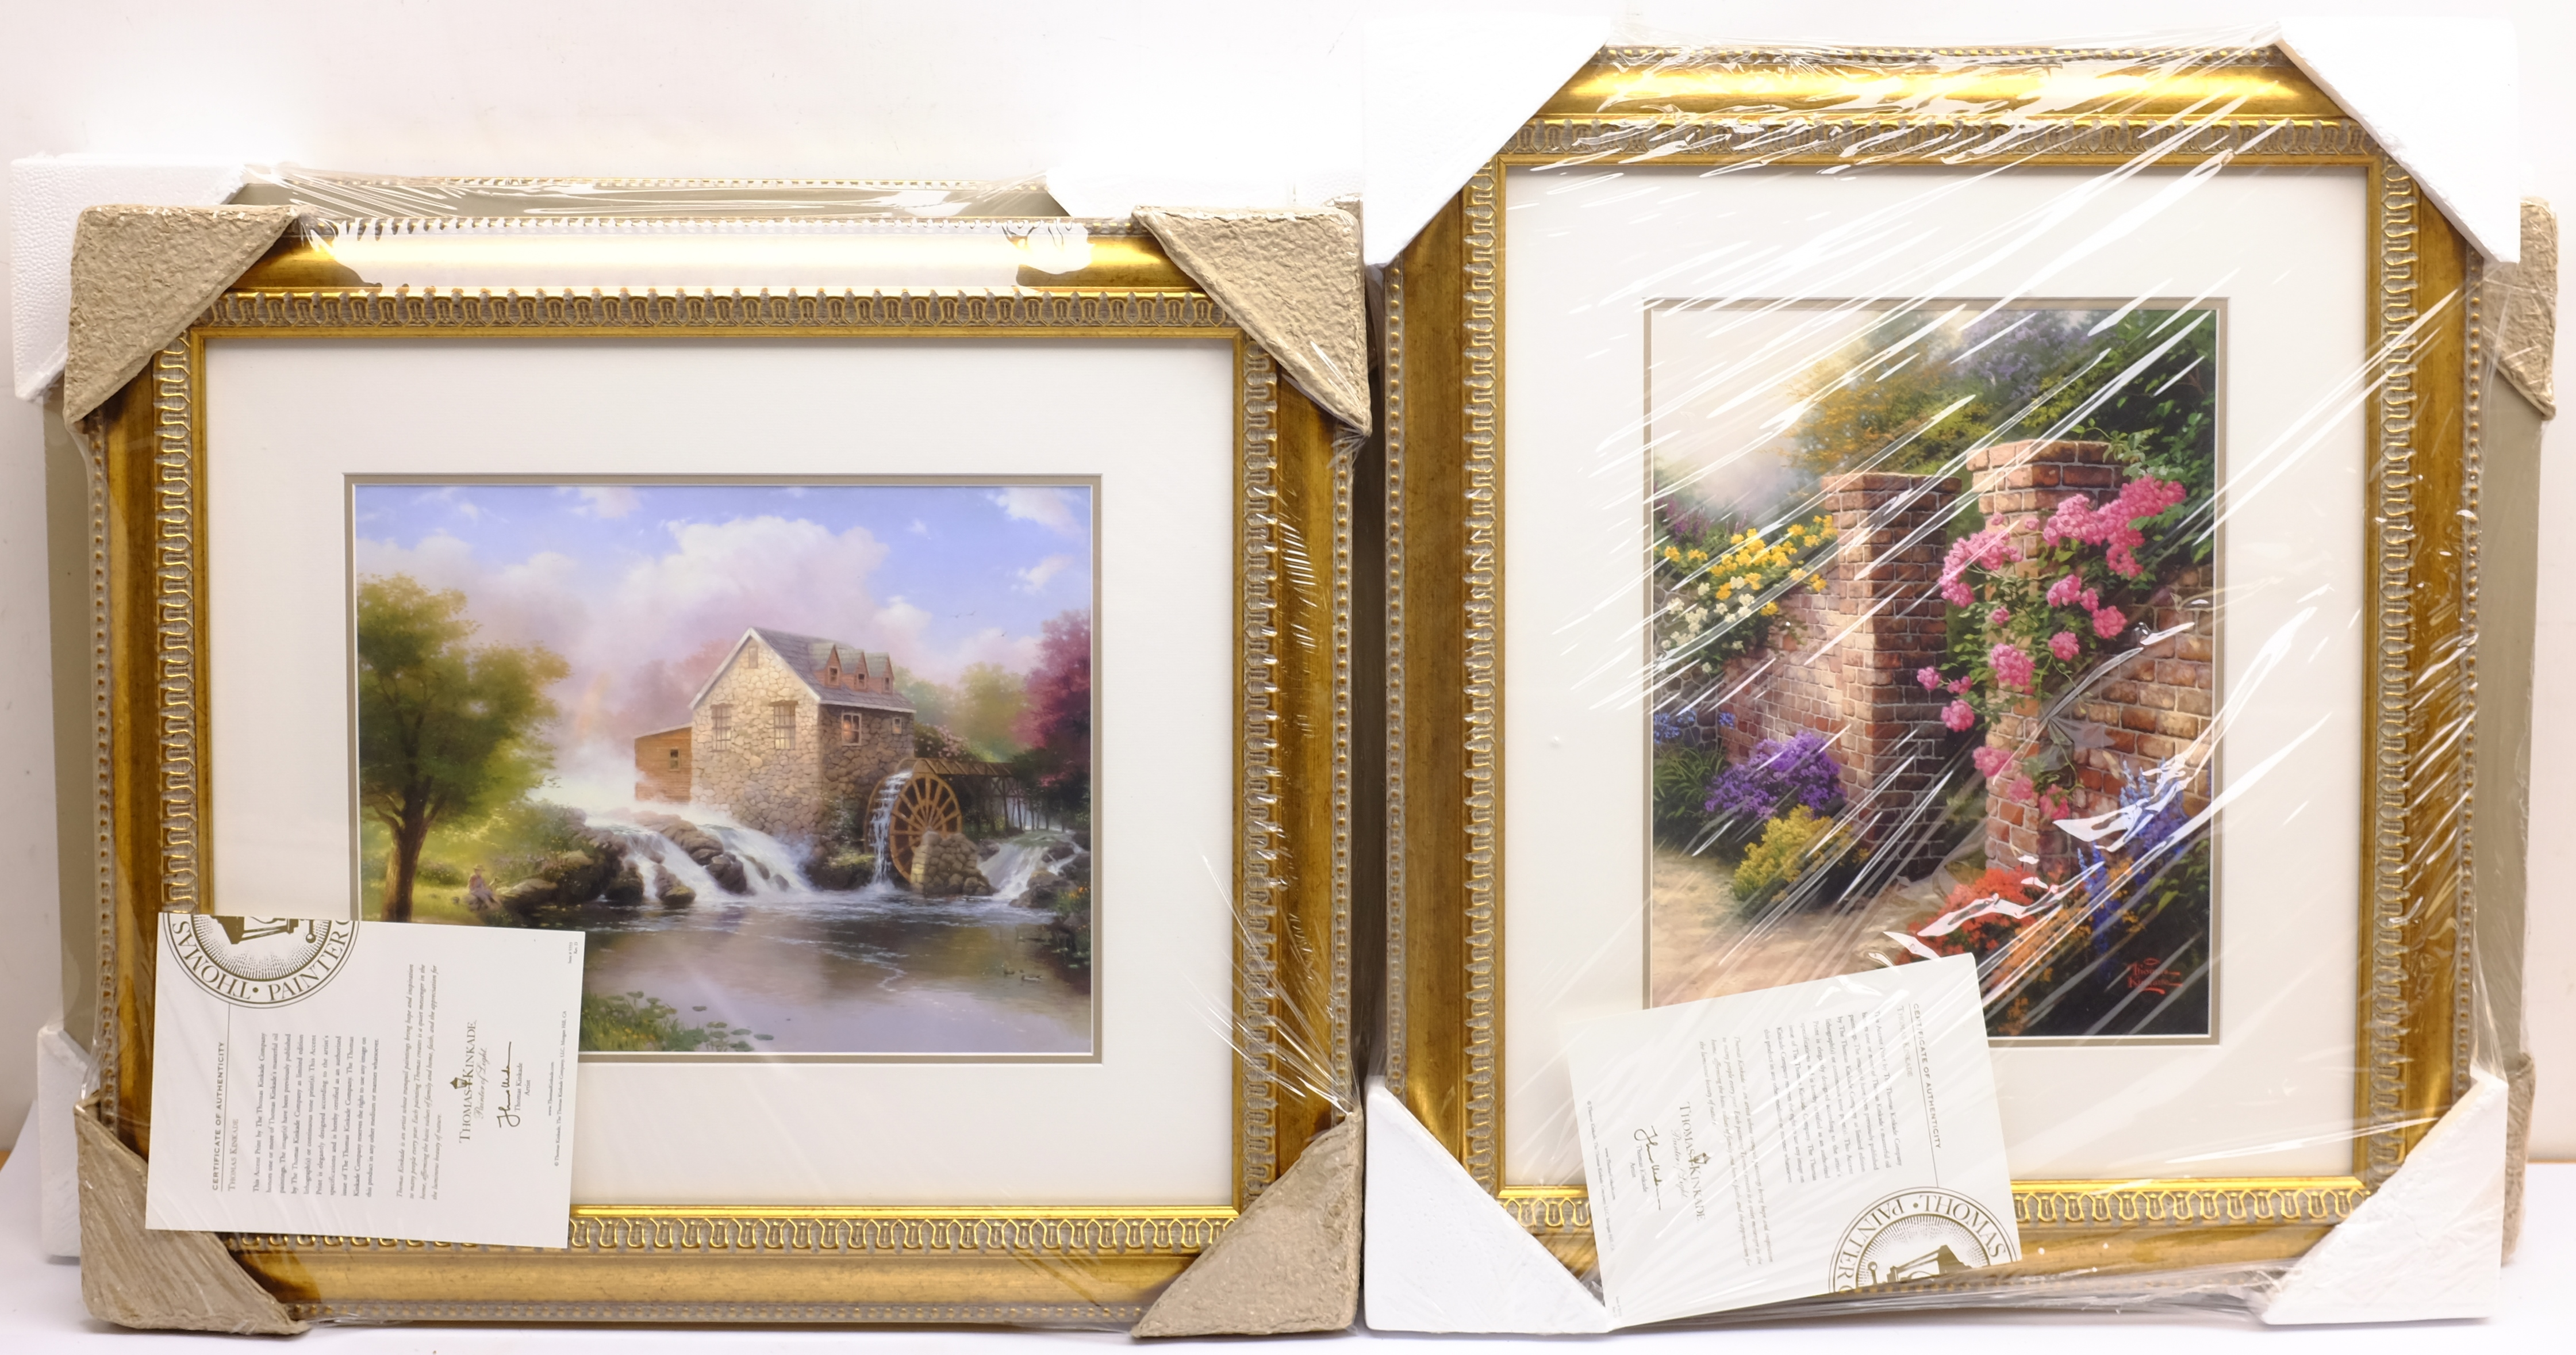 After Thomas Kinkade (American 1958-2012): Cottage and River scenes, set of six colour prints 28cm x - Image 4 of 4